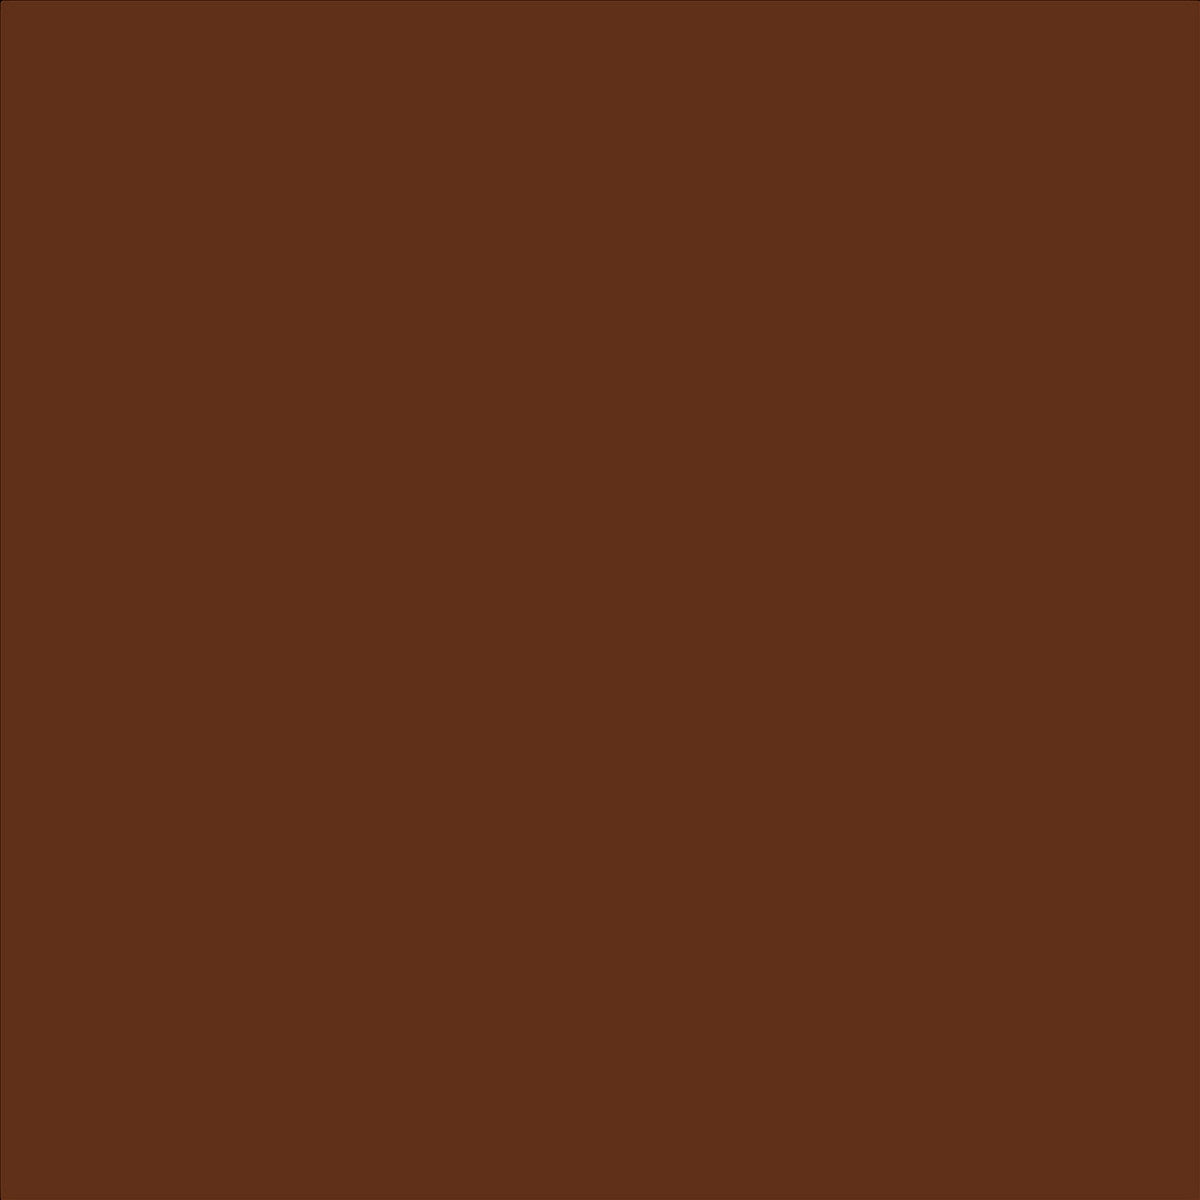 Mayco SS024 Chocolate Fudge Softee Acrylic Stain, 2 oz - Sounding Stone